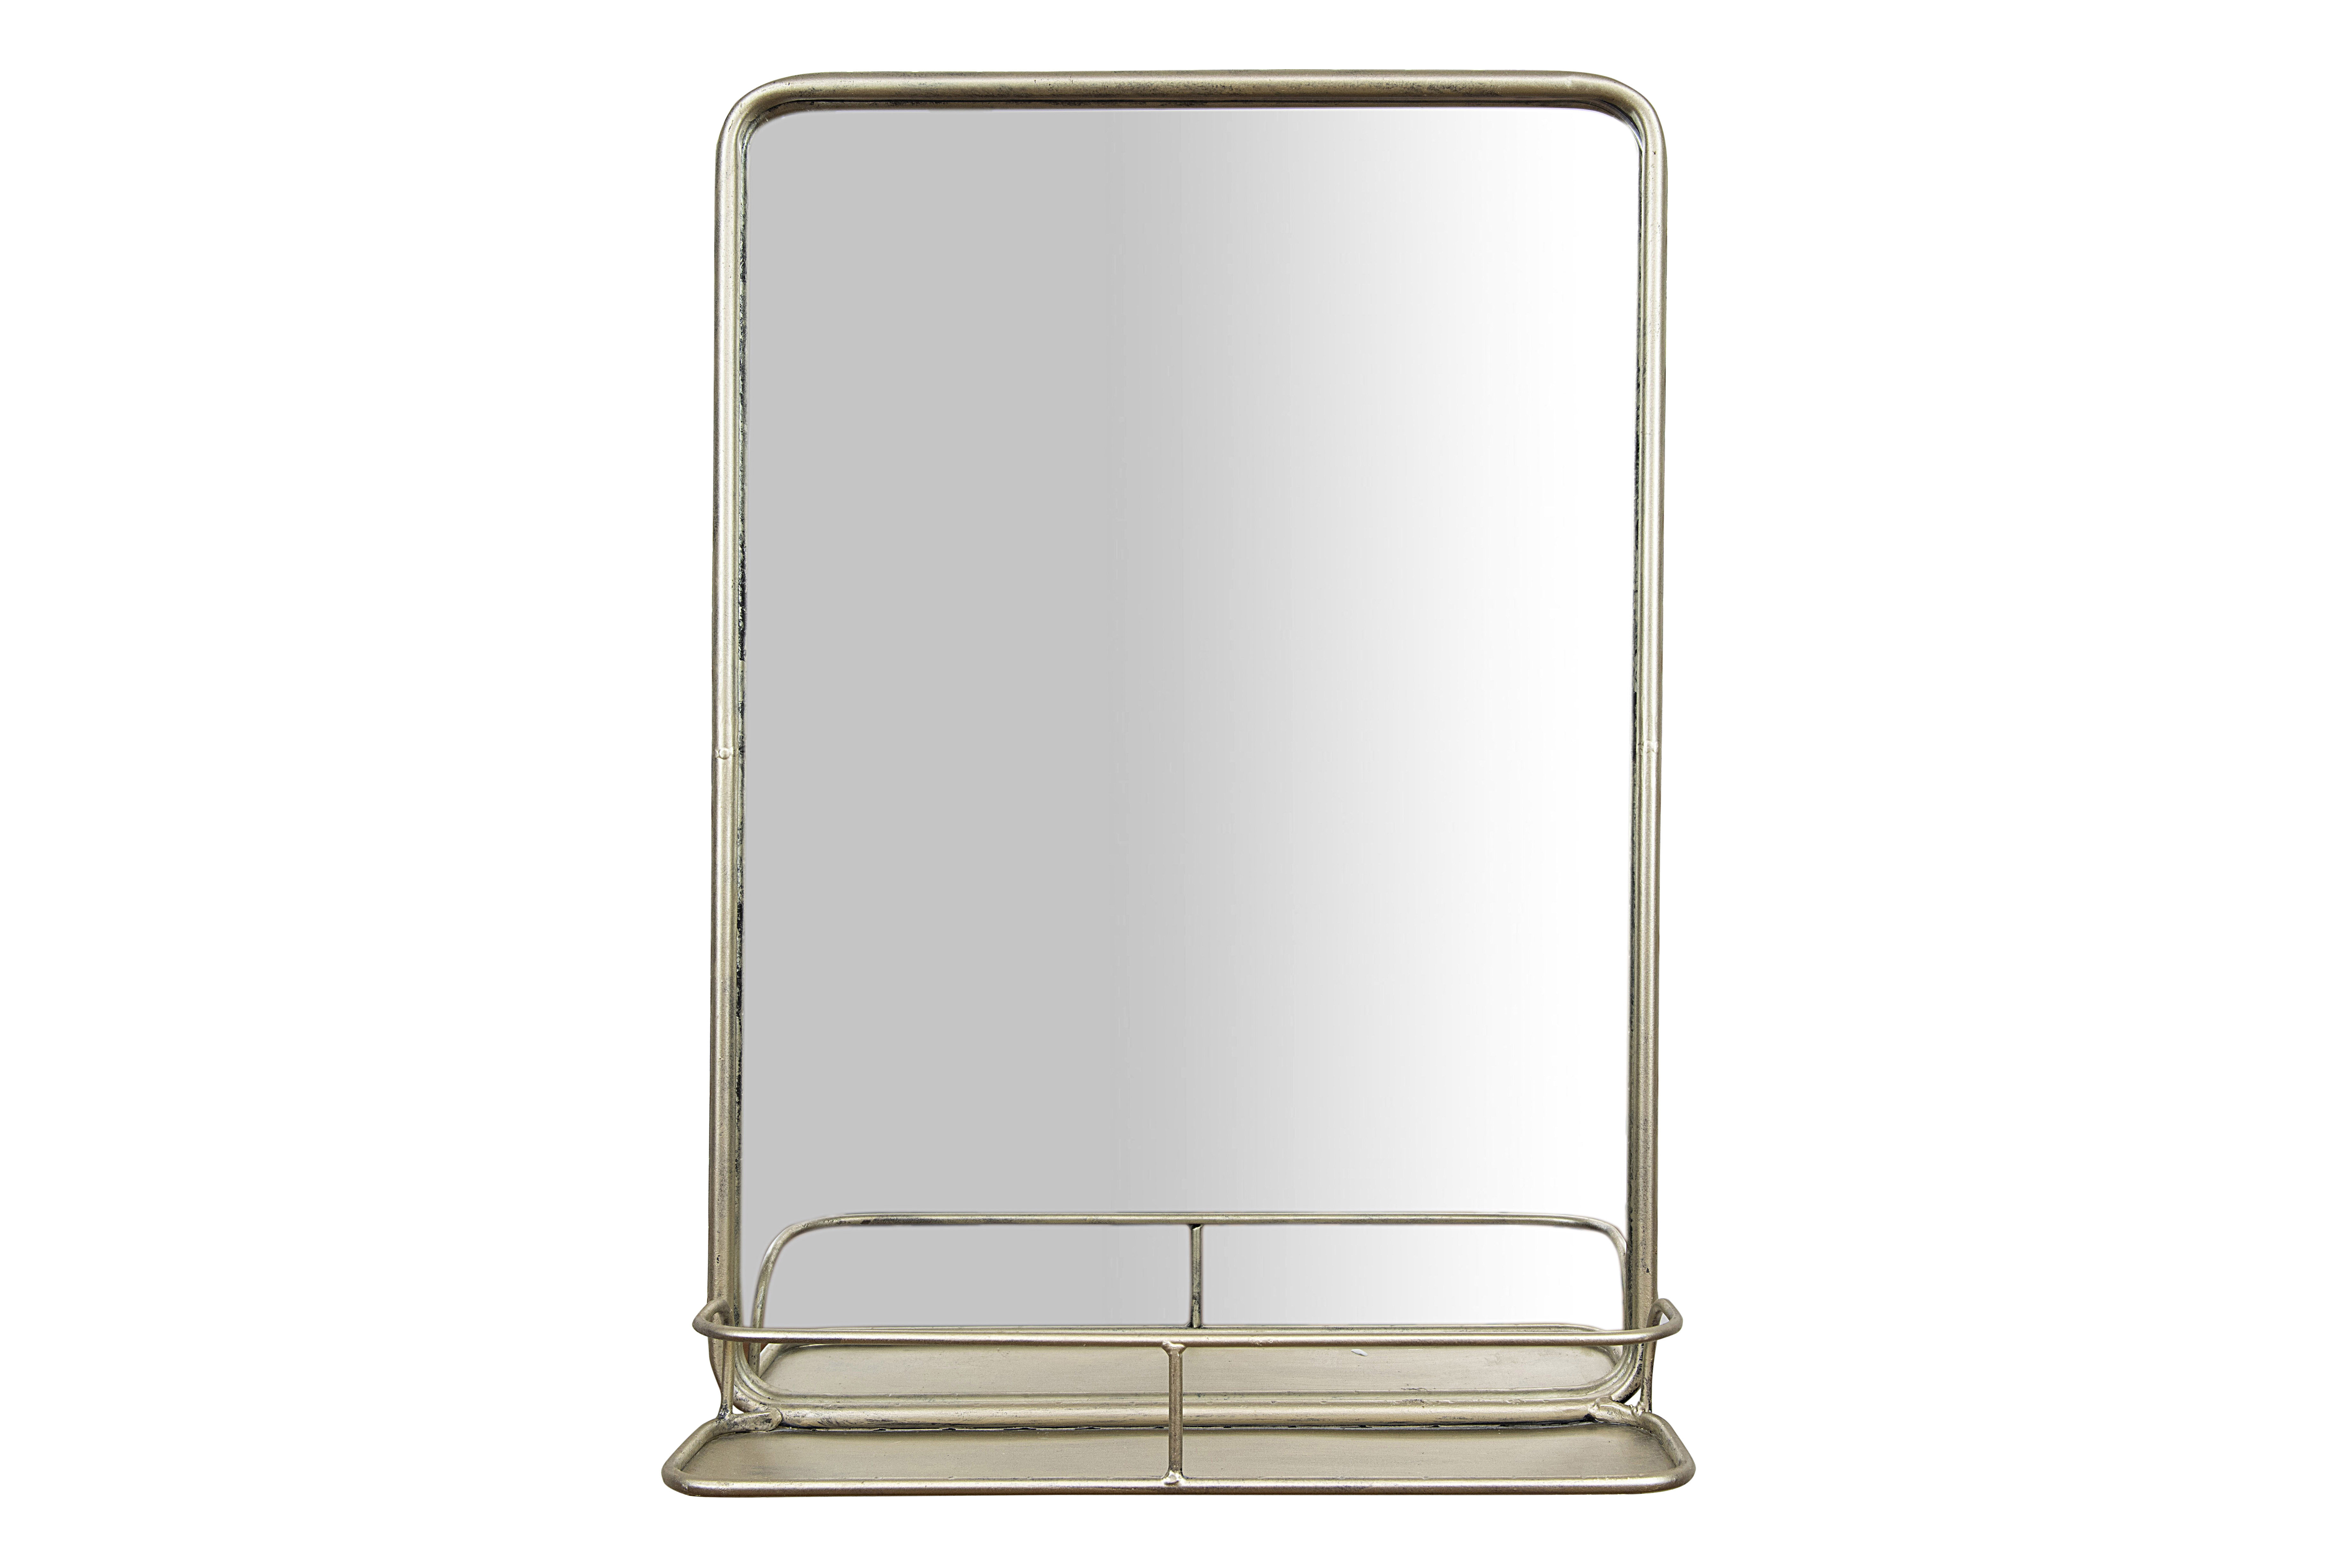 Gaunts Earthcott Modern & Contemporary Beveled Accent Mirrors Inside Fashionable Laurel Foundry Modern Farmhouse Peetz Modern Rustic Accent Mirror (View 16 of 20)